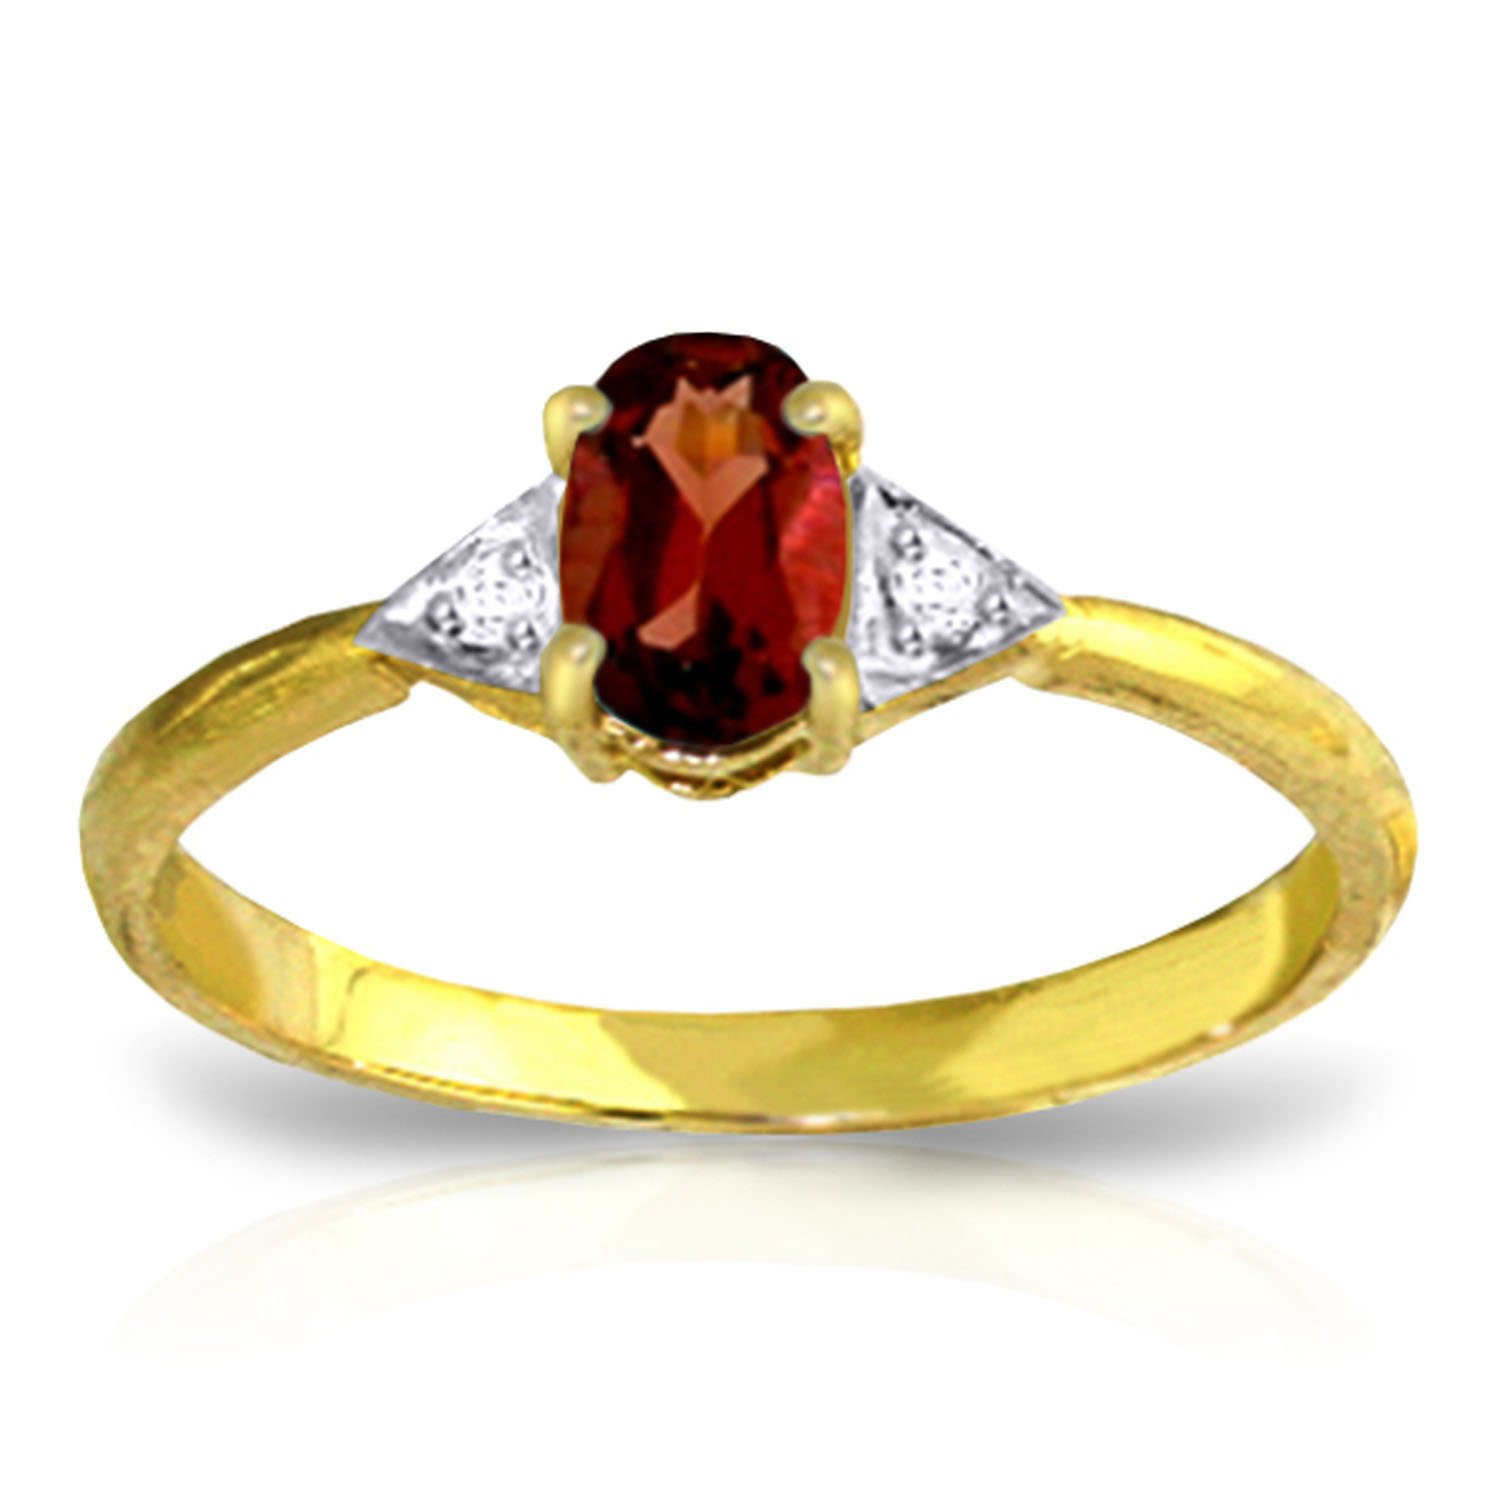 0.46 Carat 14k Solid Gold Ring with Genuine Diamonds and Natural Oval-shaped Garnet